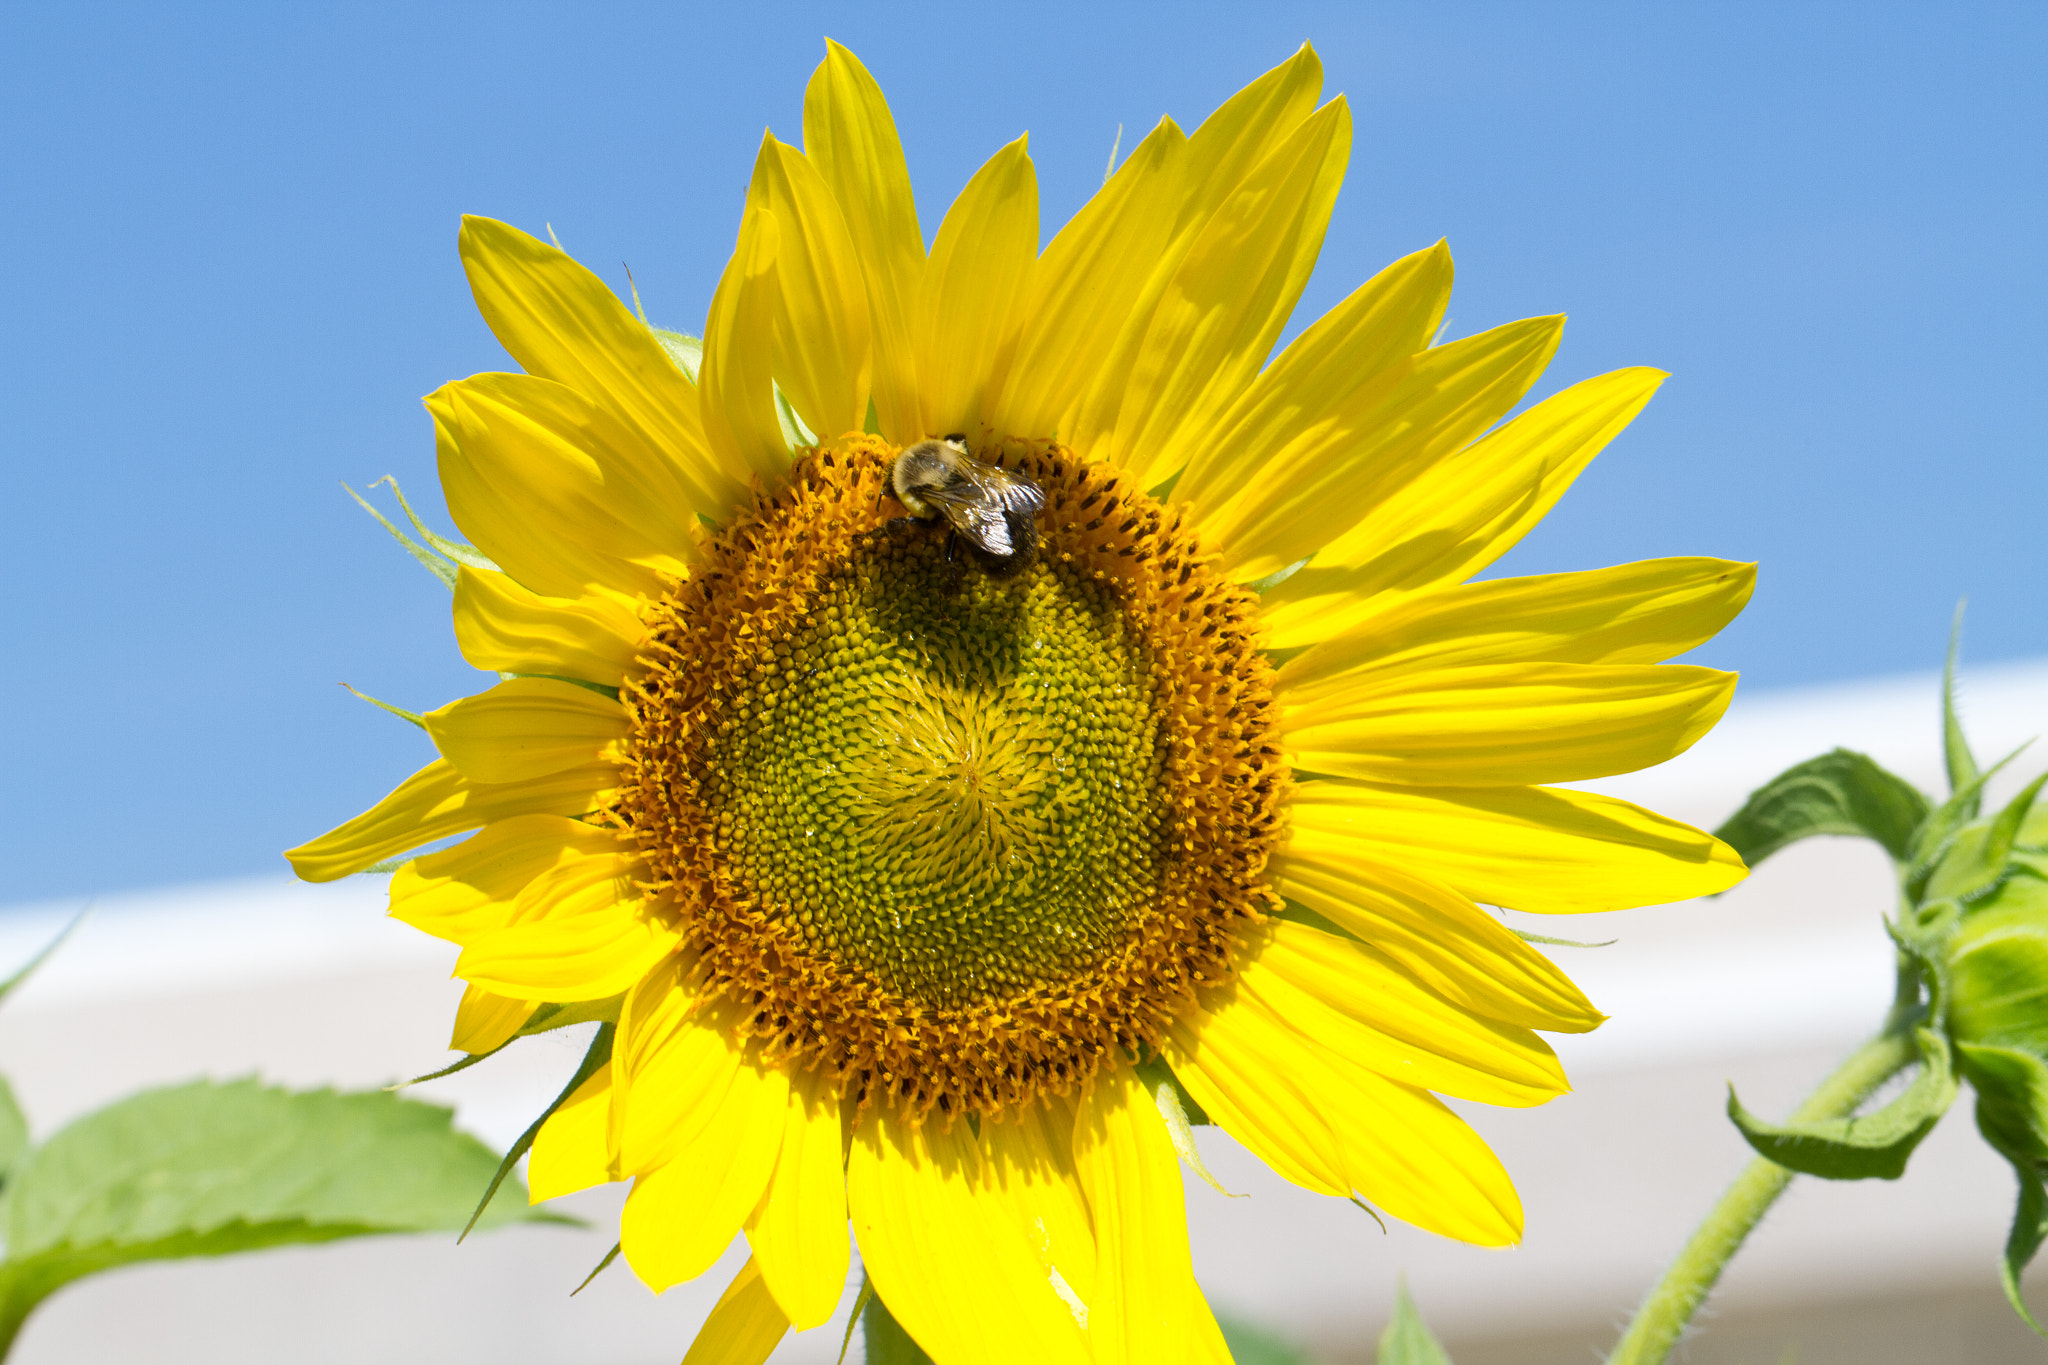 Photograph Bee on a sunflower by John Hoey on 500px